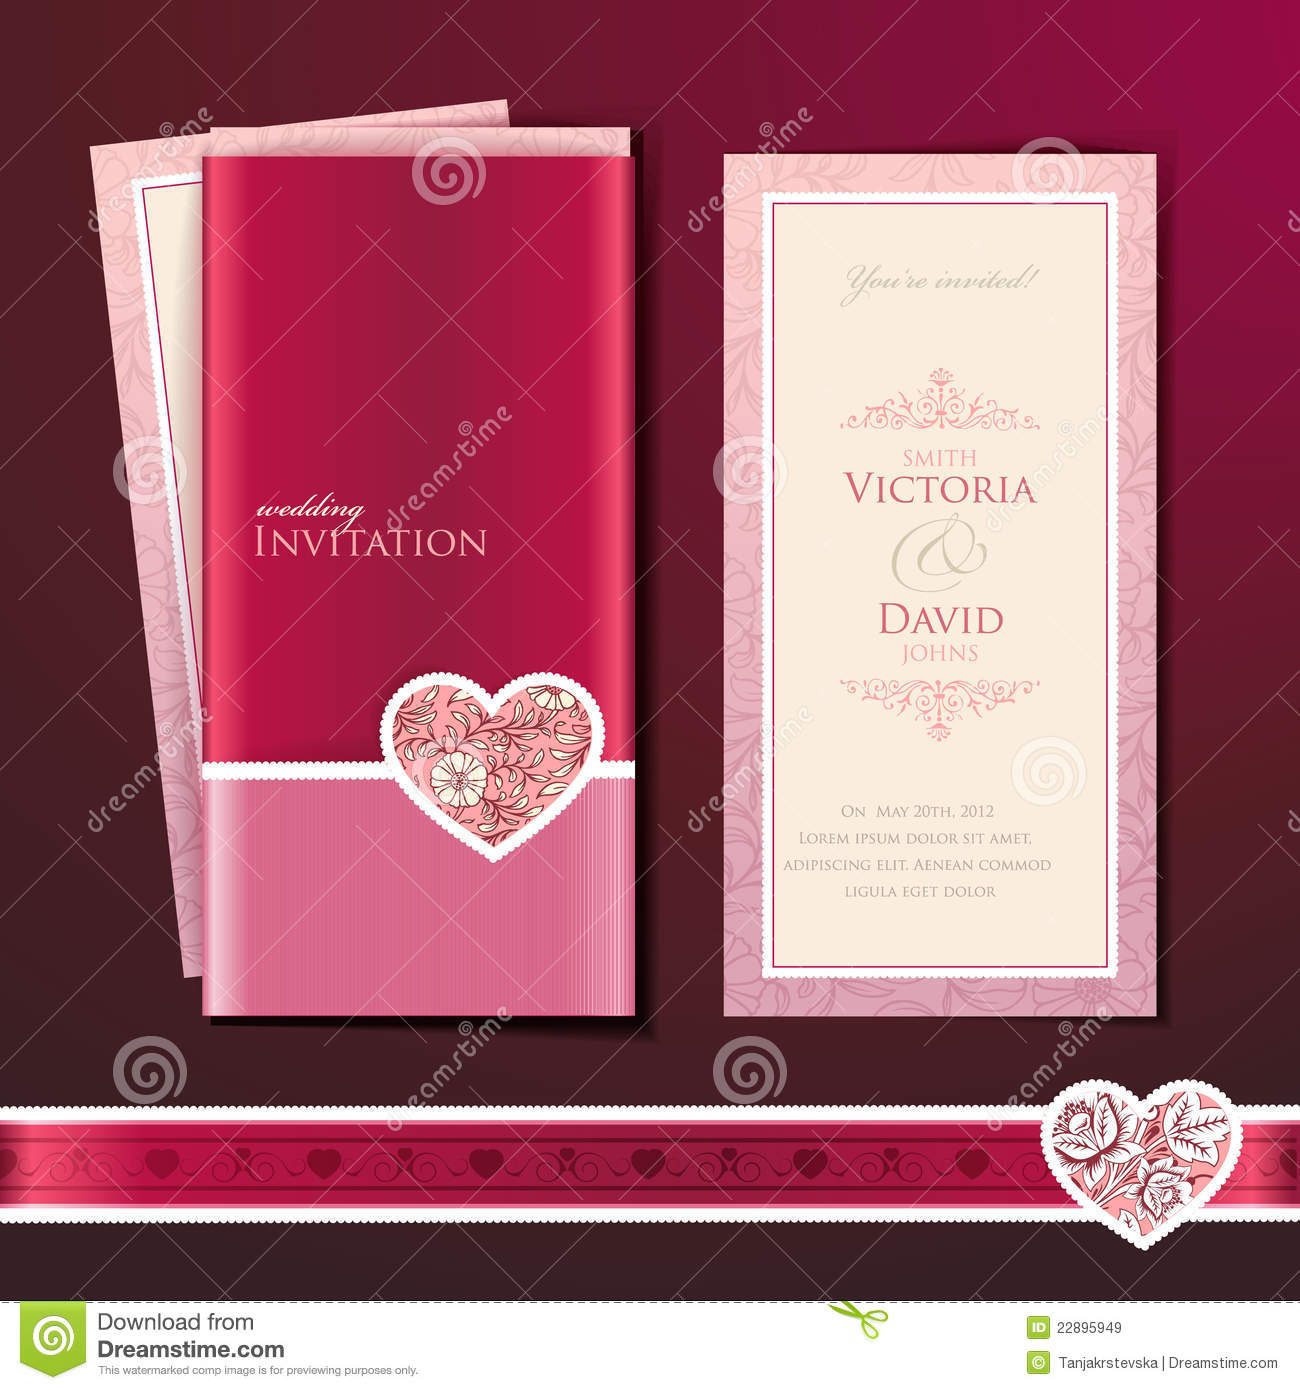 doc 600561 wedding invitation cards for wedding invitation card royalty images image 22895949 wedding invitation cards for